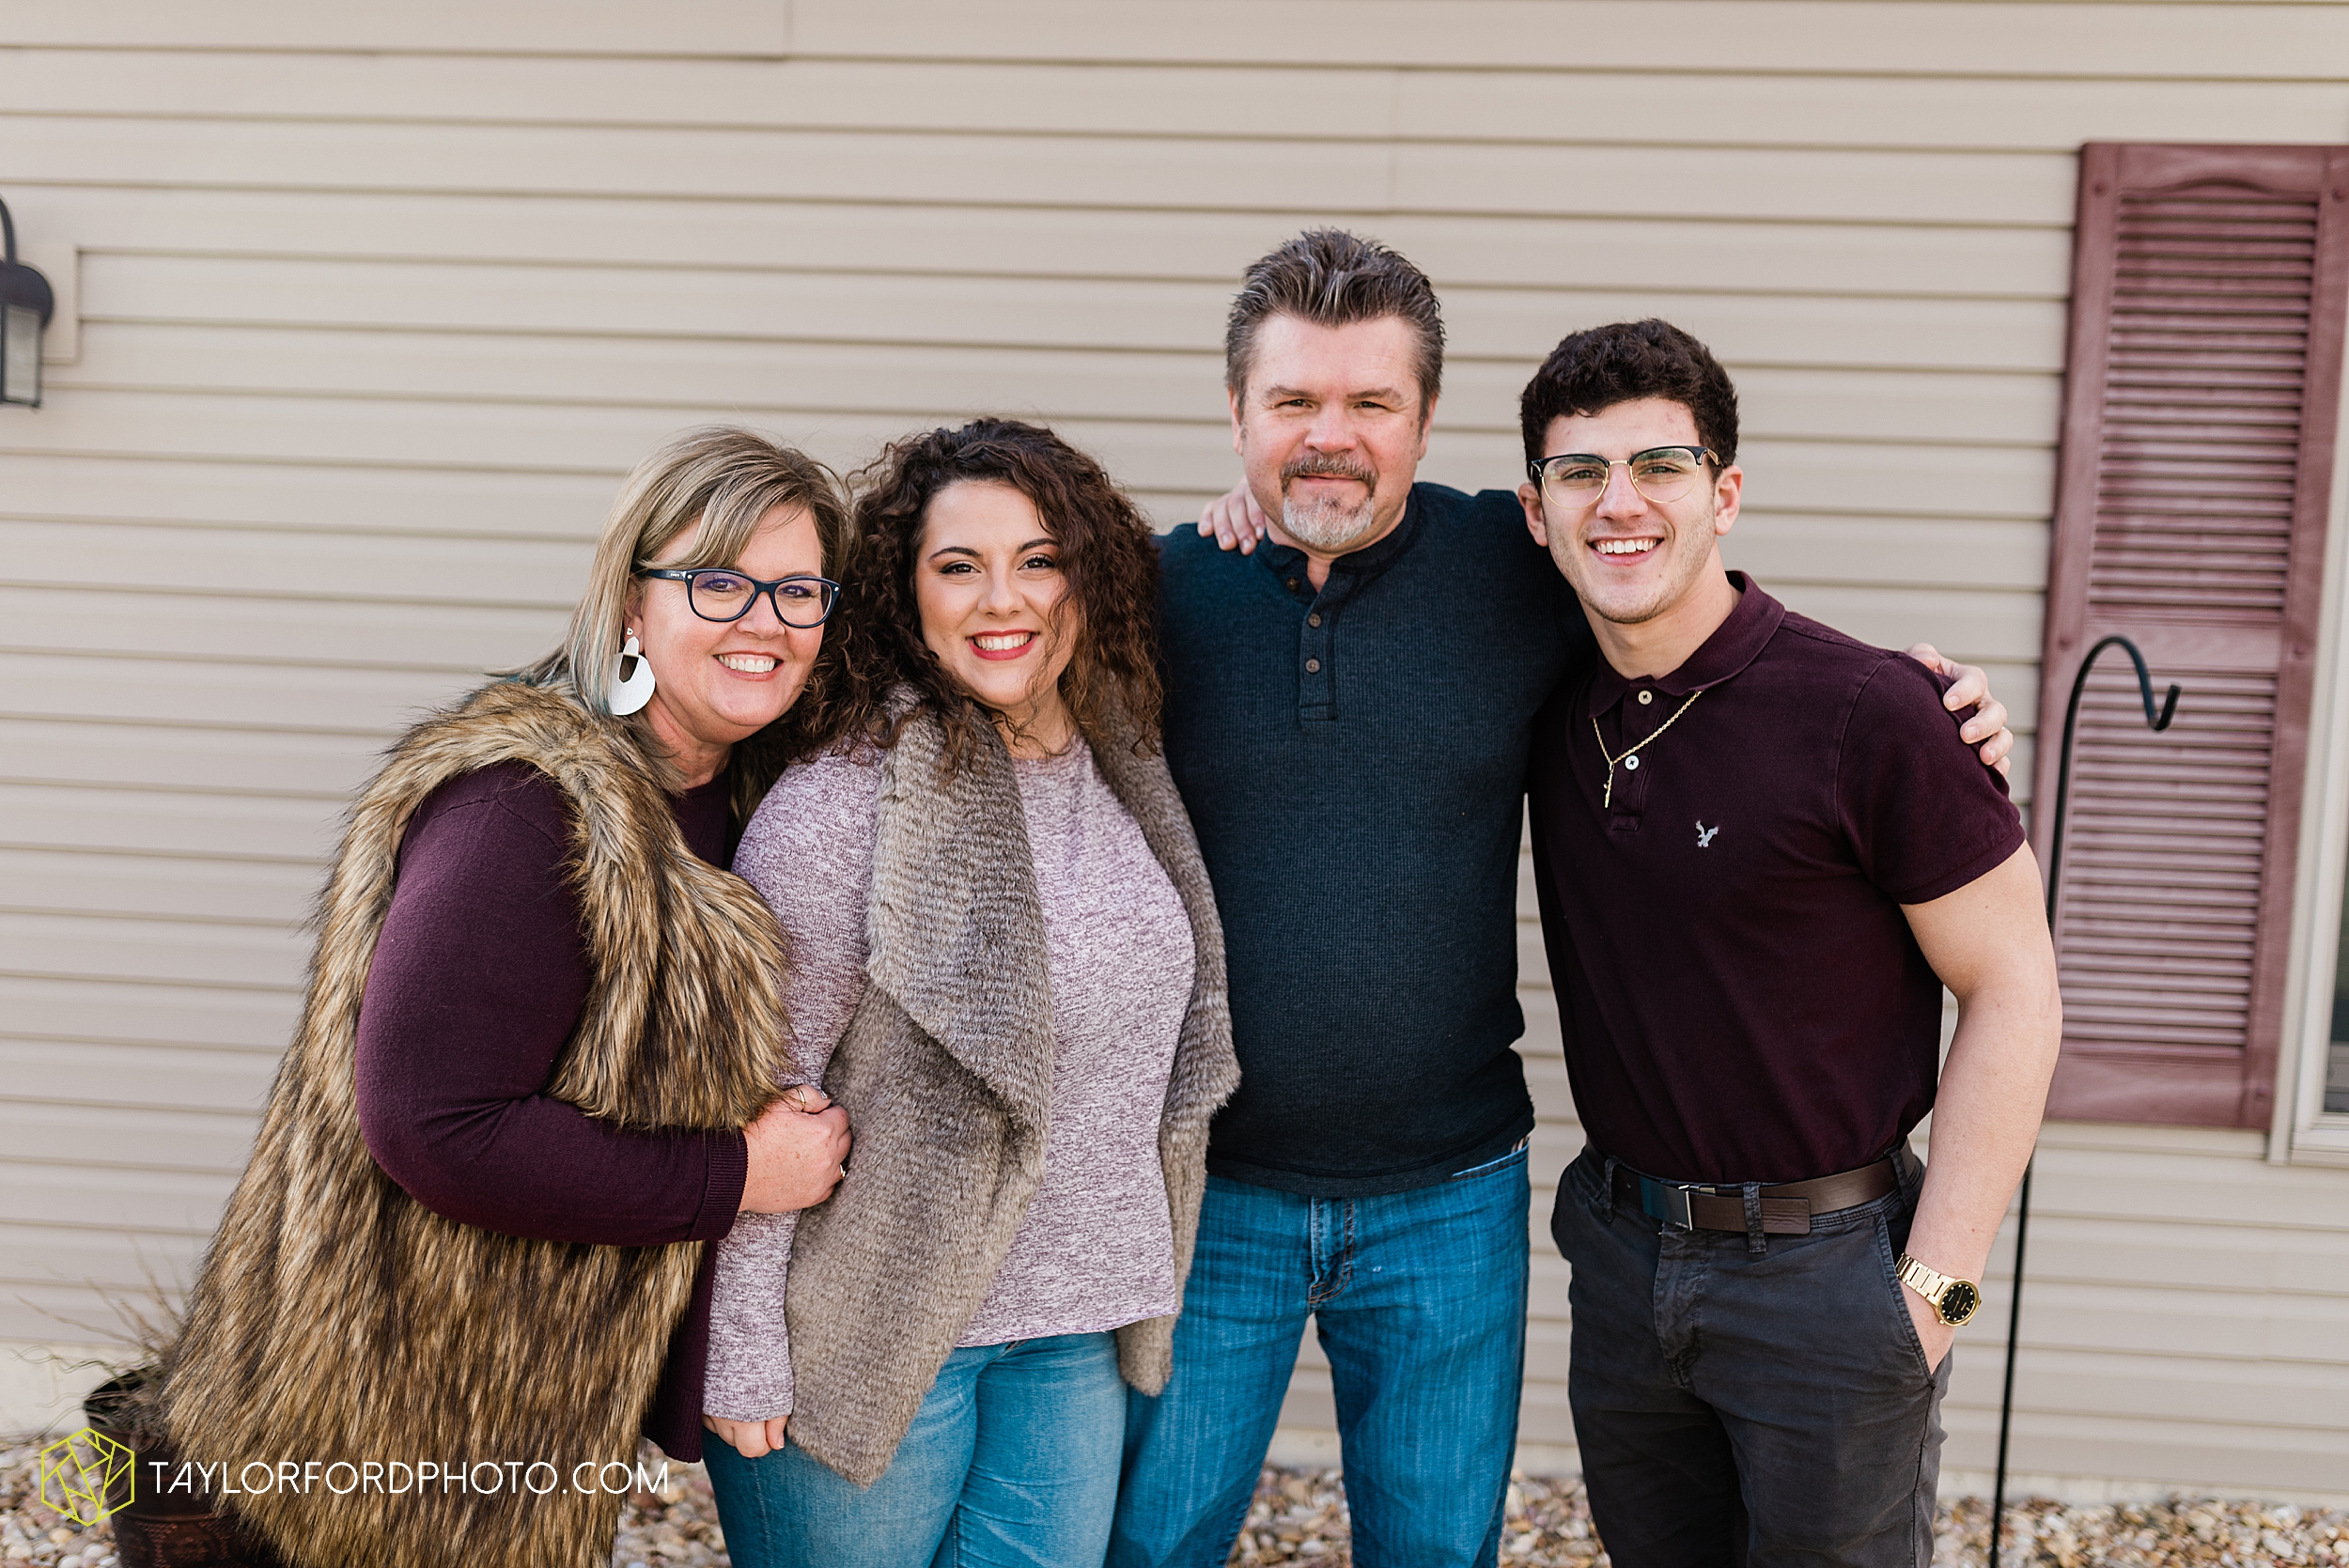 fortney-matthews-extended-family-van-wert-ohio-at-home-family-farm-photography-taylor-ford-hirschy-photographer_2042.jpg